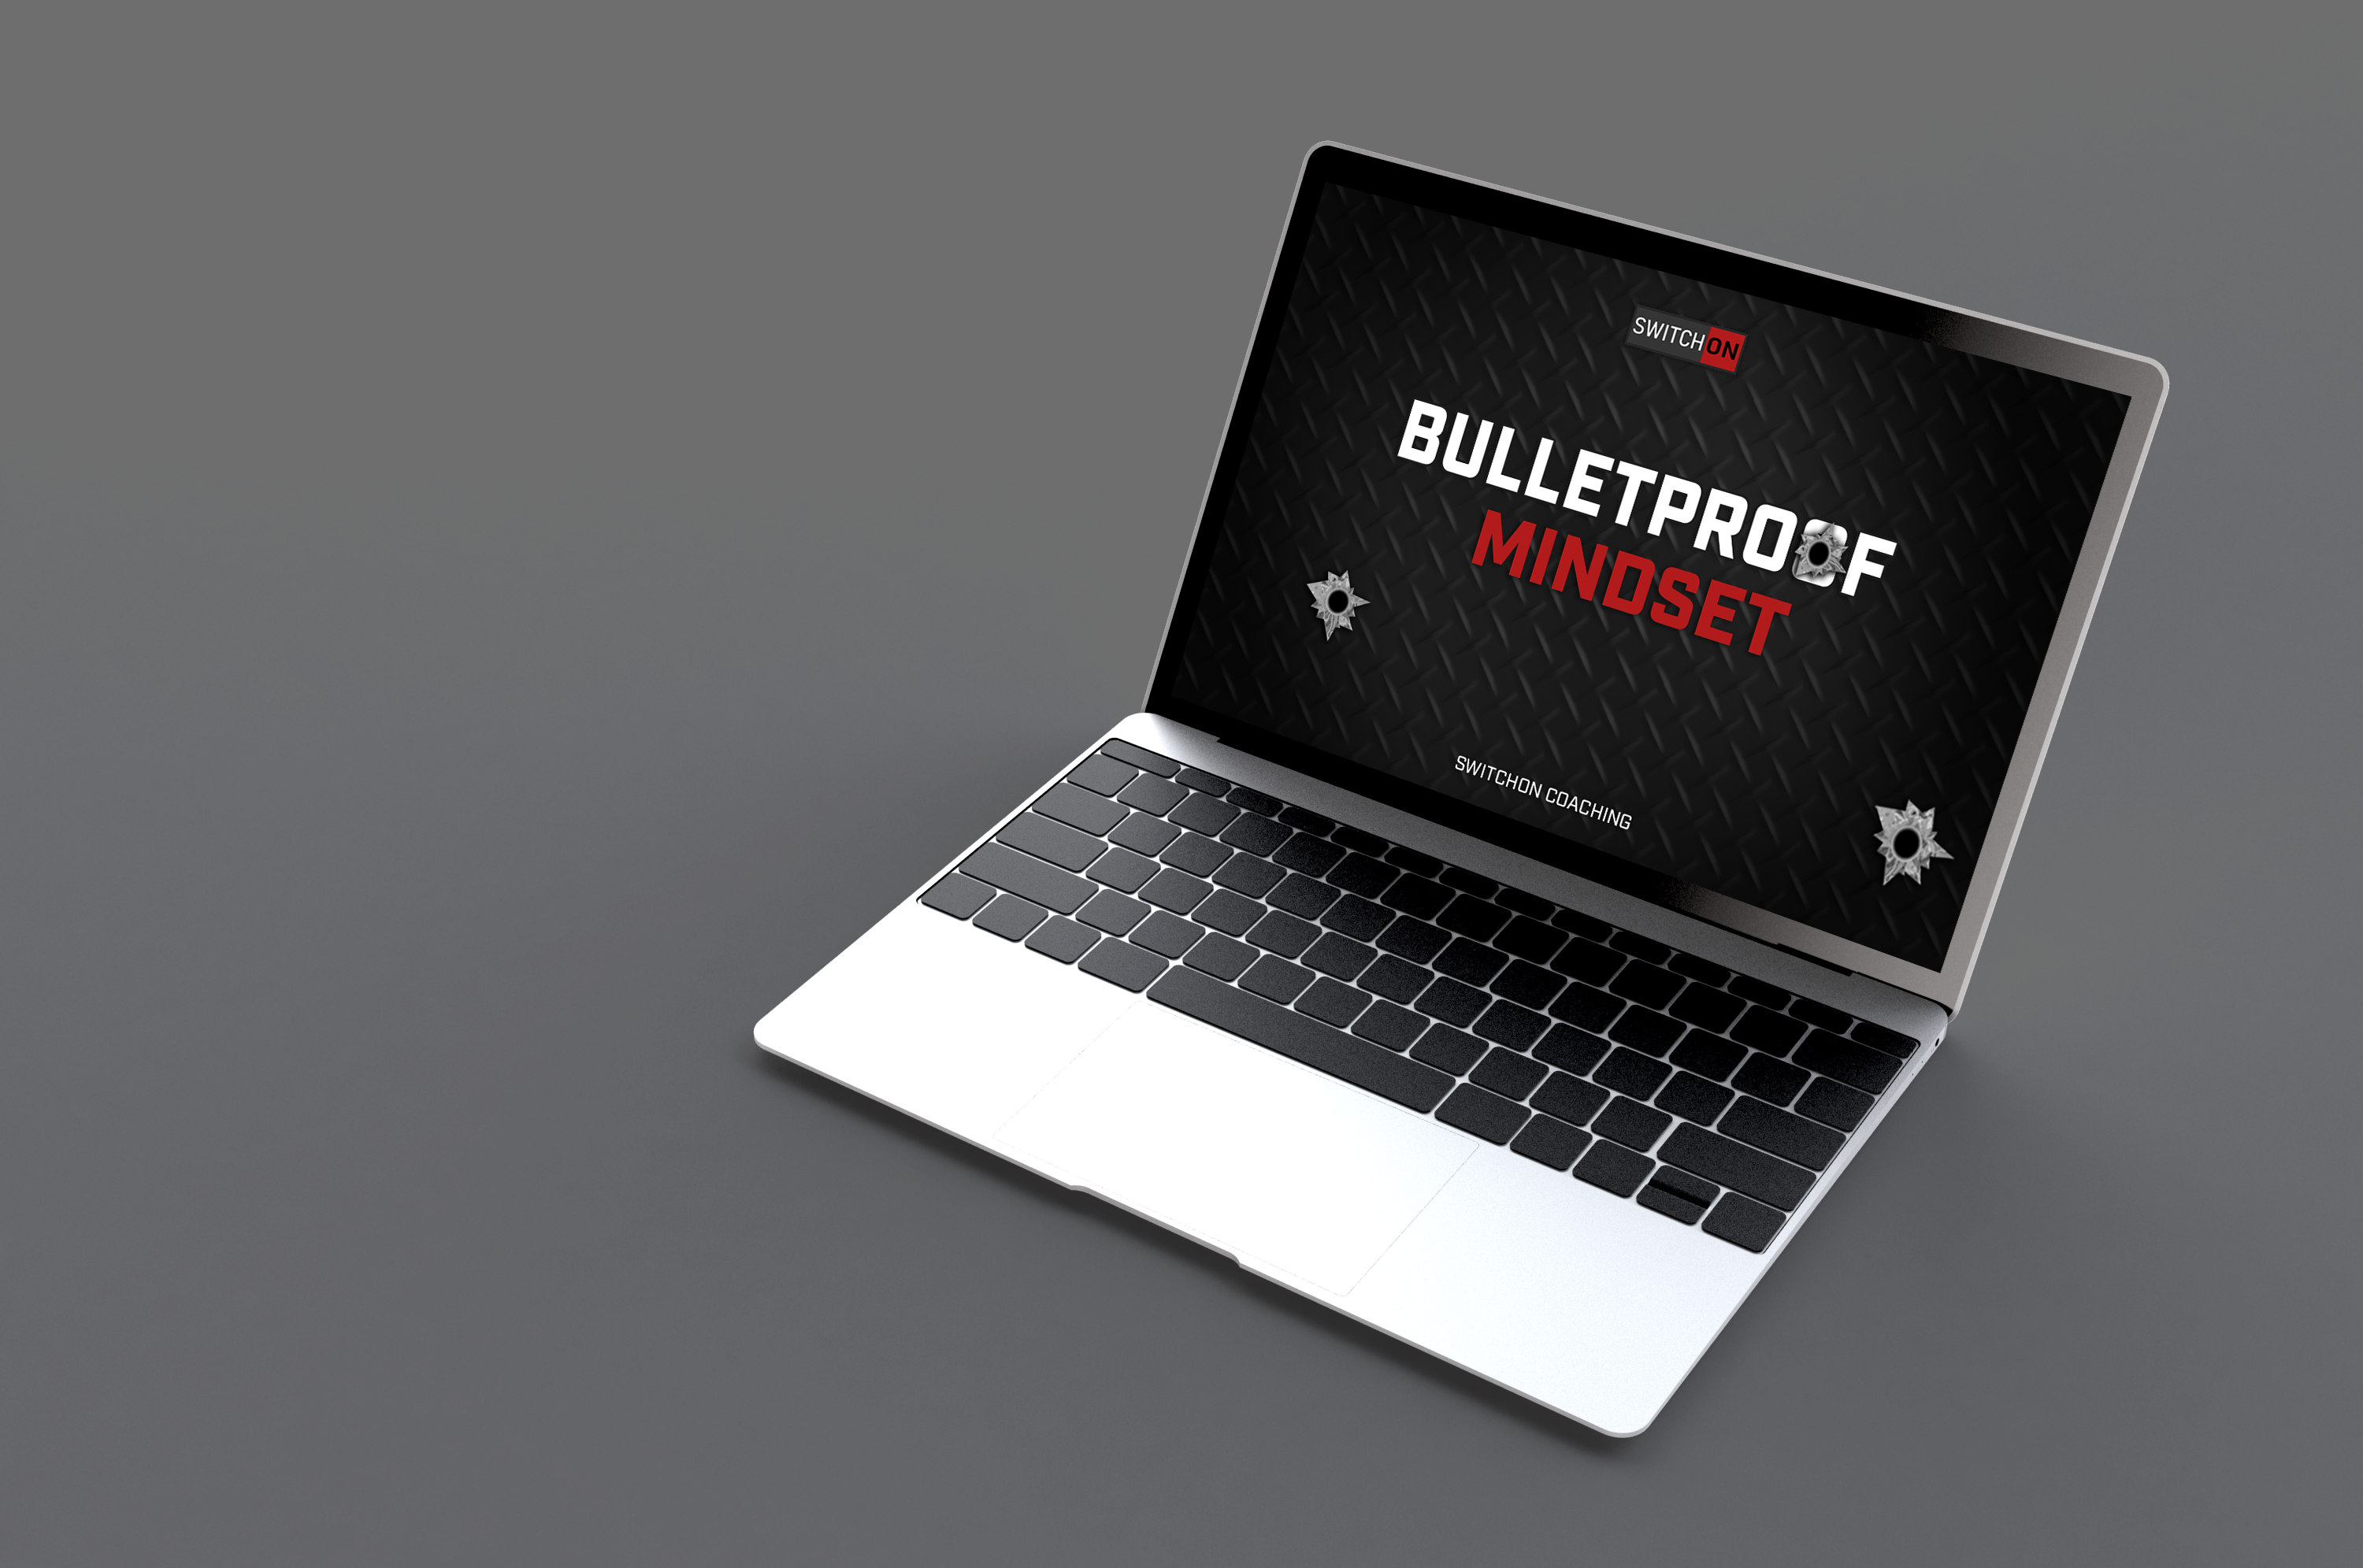 Bulletproof Mindset Laptop